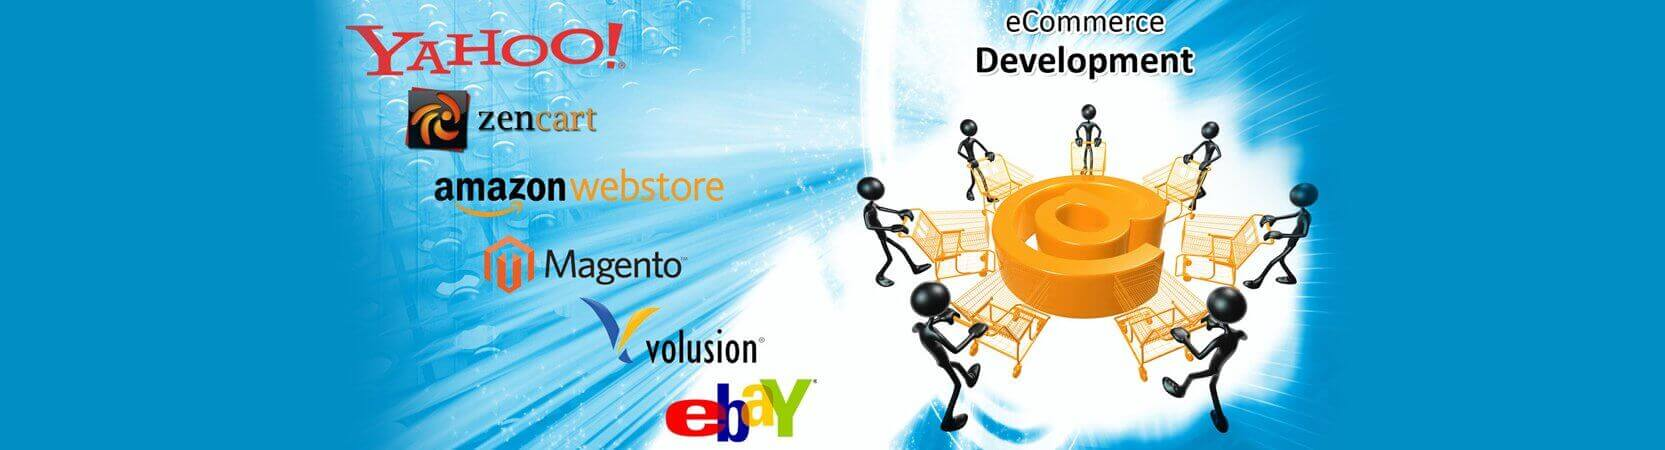 e-commerce-development